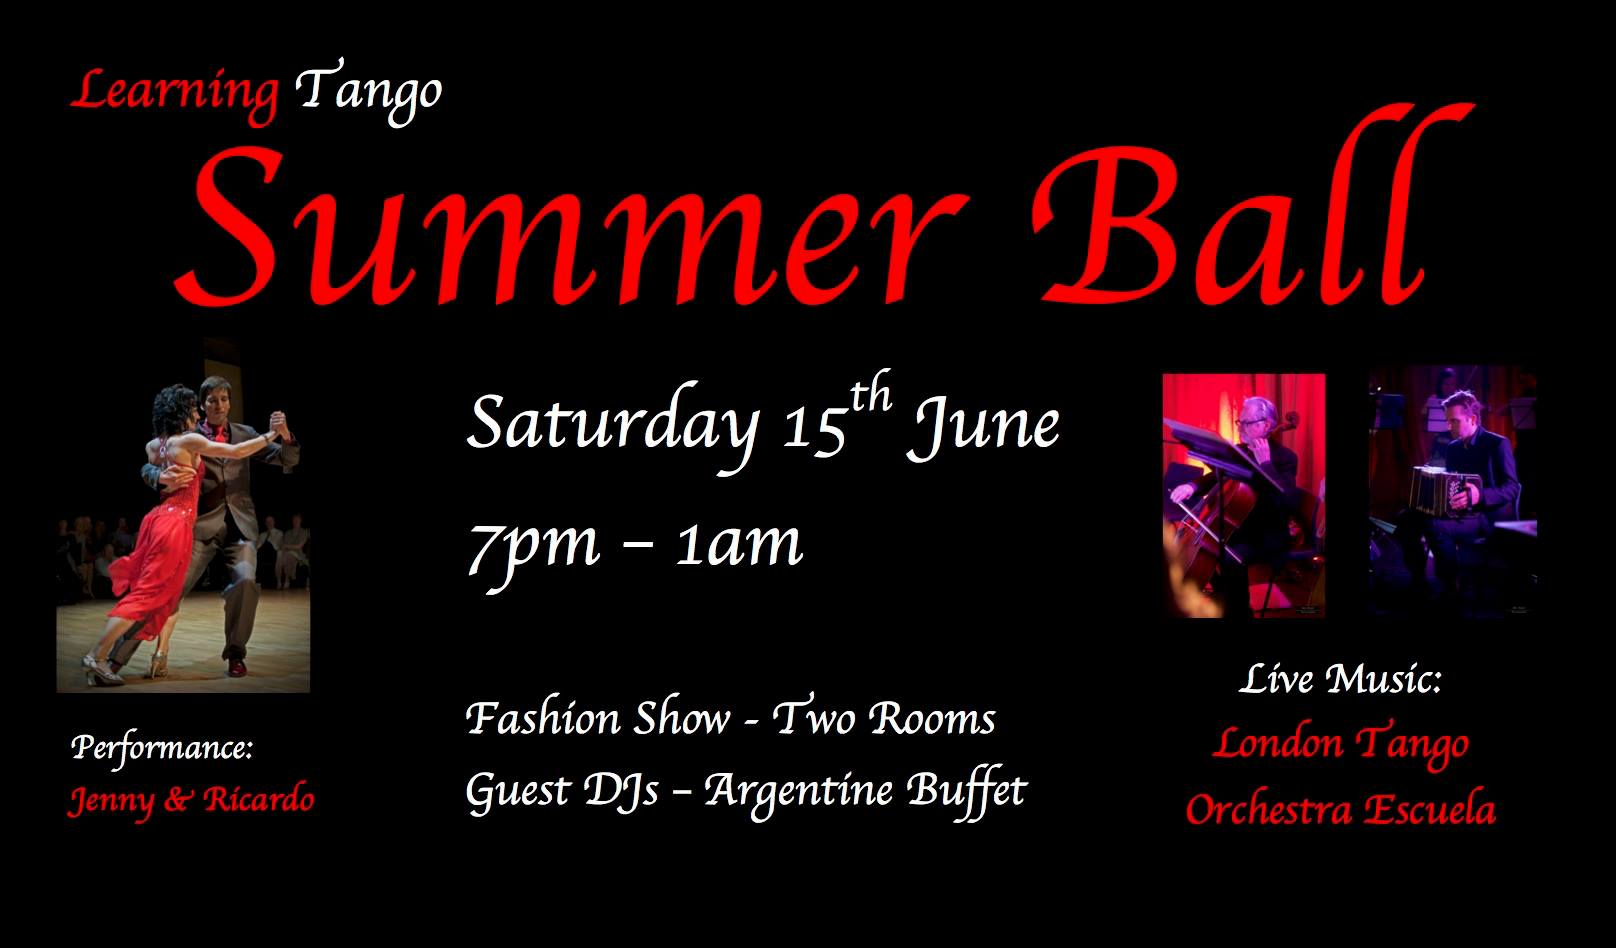 Learning Tango Summer Ball: Saturday 15th June 2019, 7pm - 1am